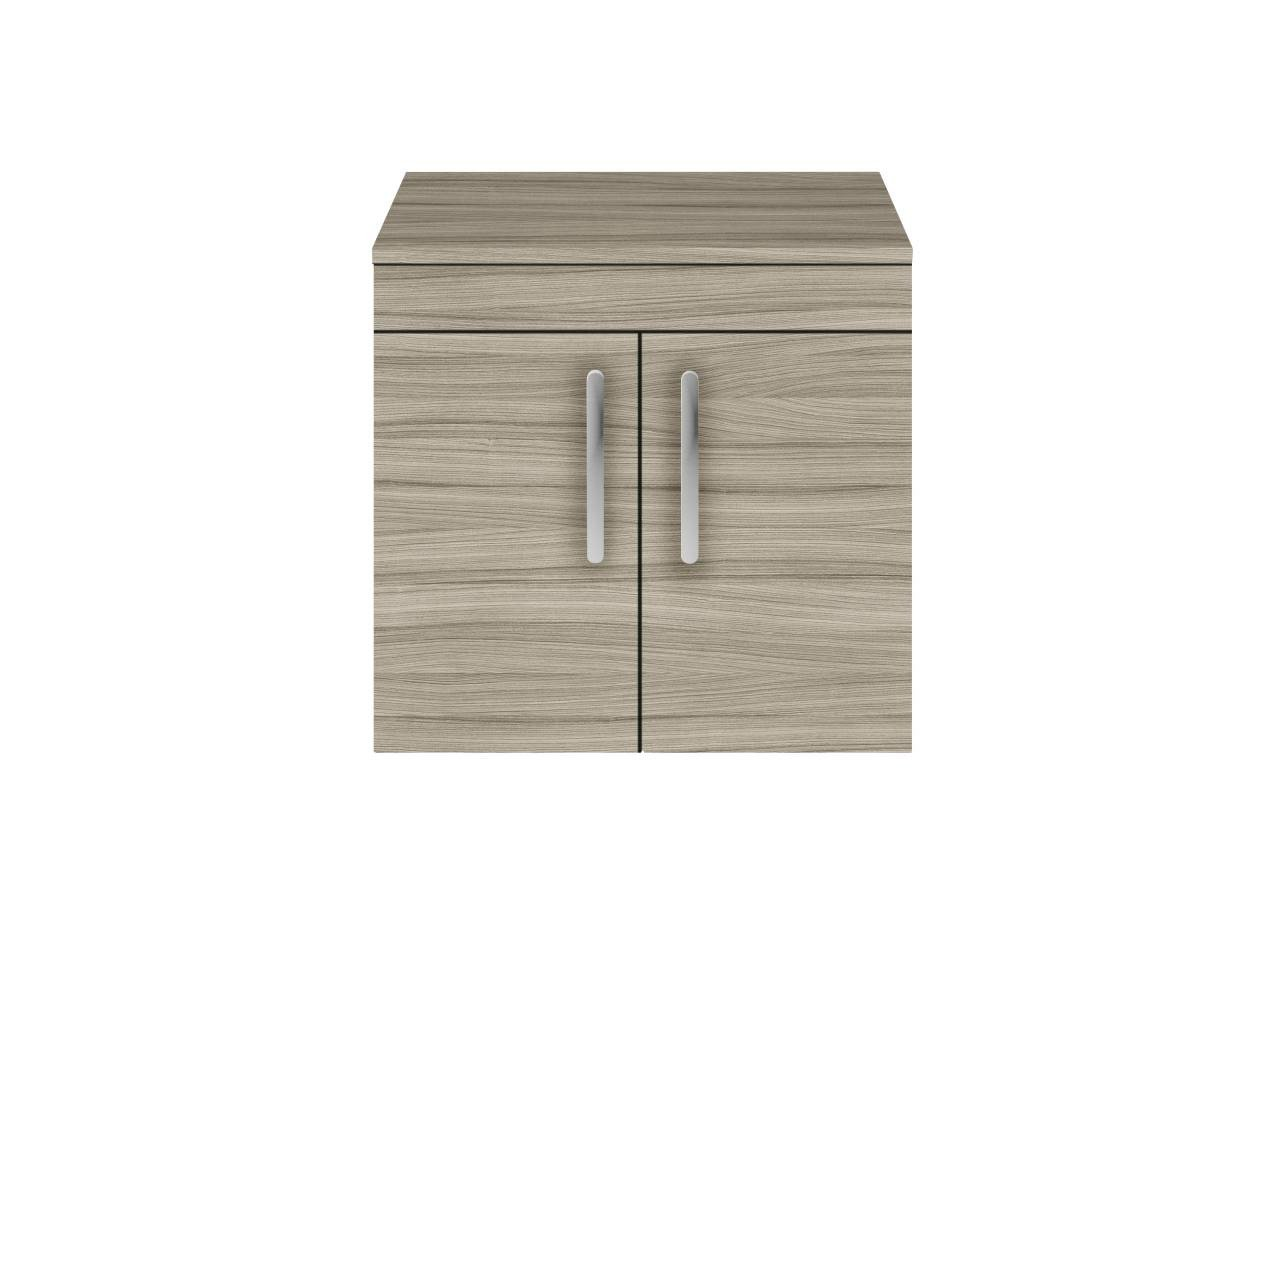 Premier Athena Driftwood 600mm Wall Hung 2 Door Vanity Unit with Worktop - ATH089W